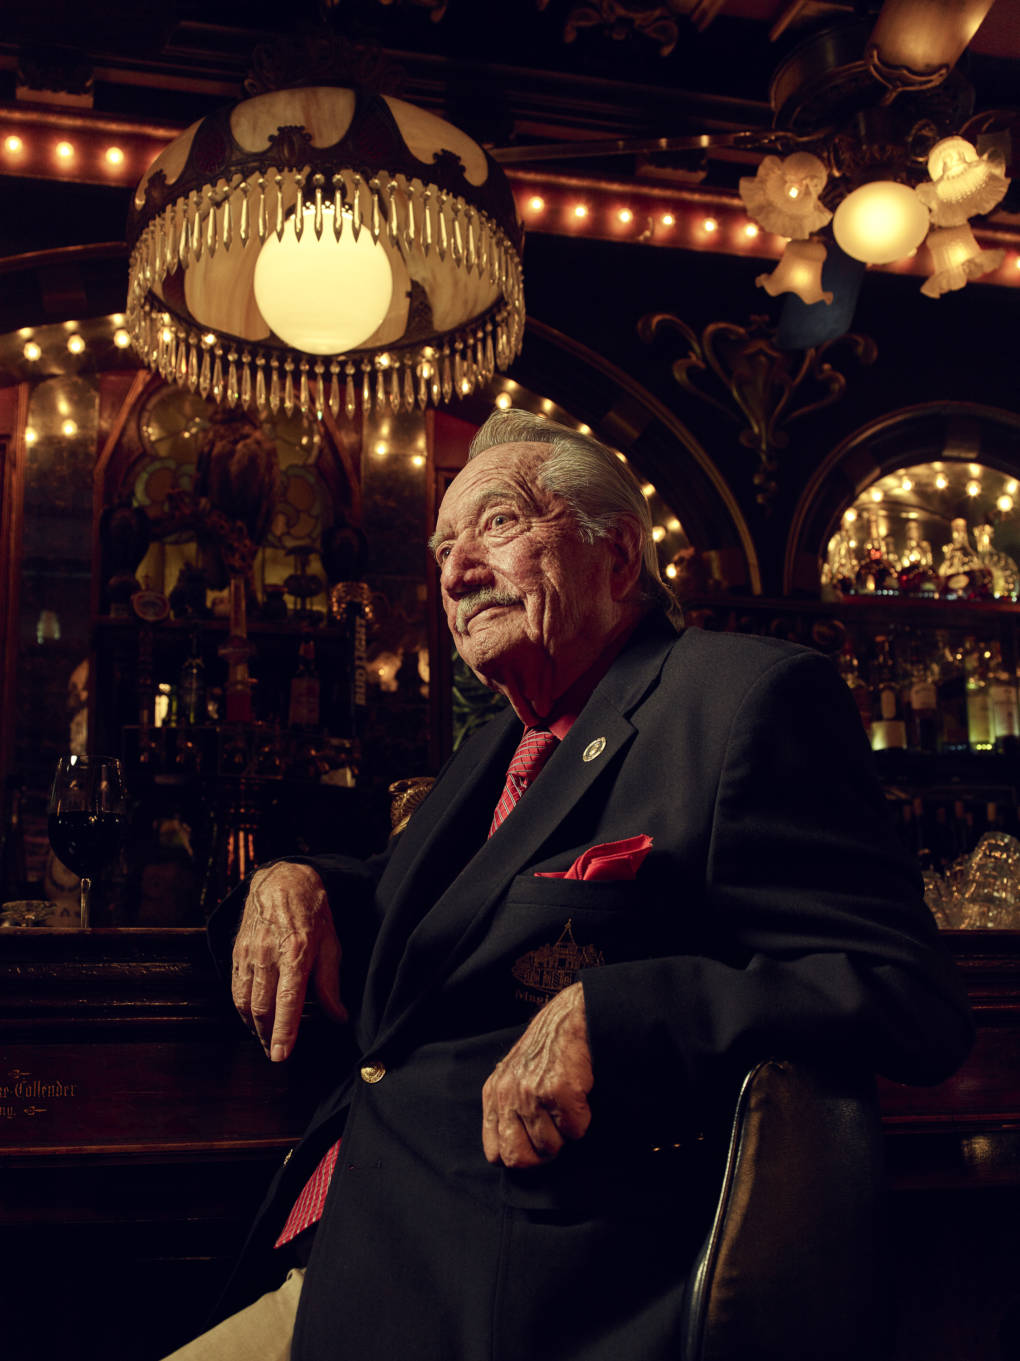 Milt Larsen, co-founder of the Magic Castle, sitting at the Owl Bar.